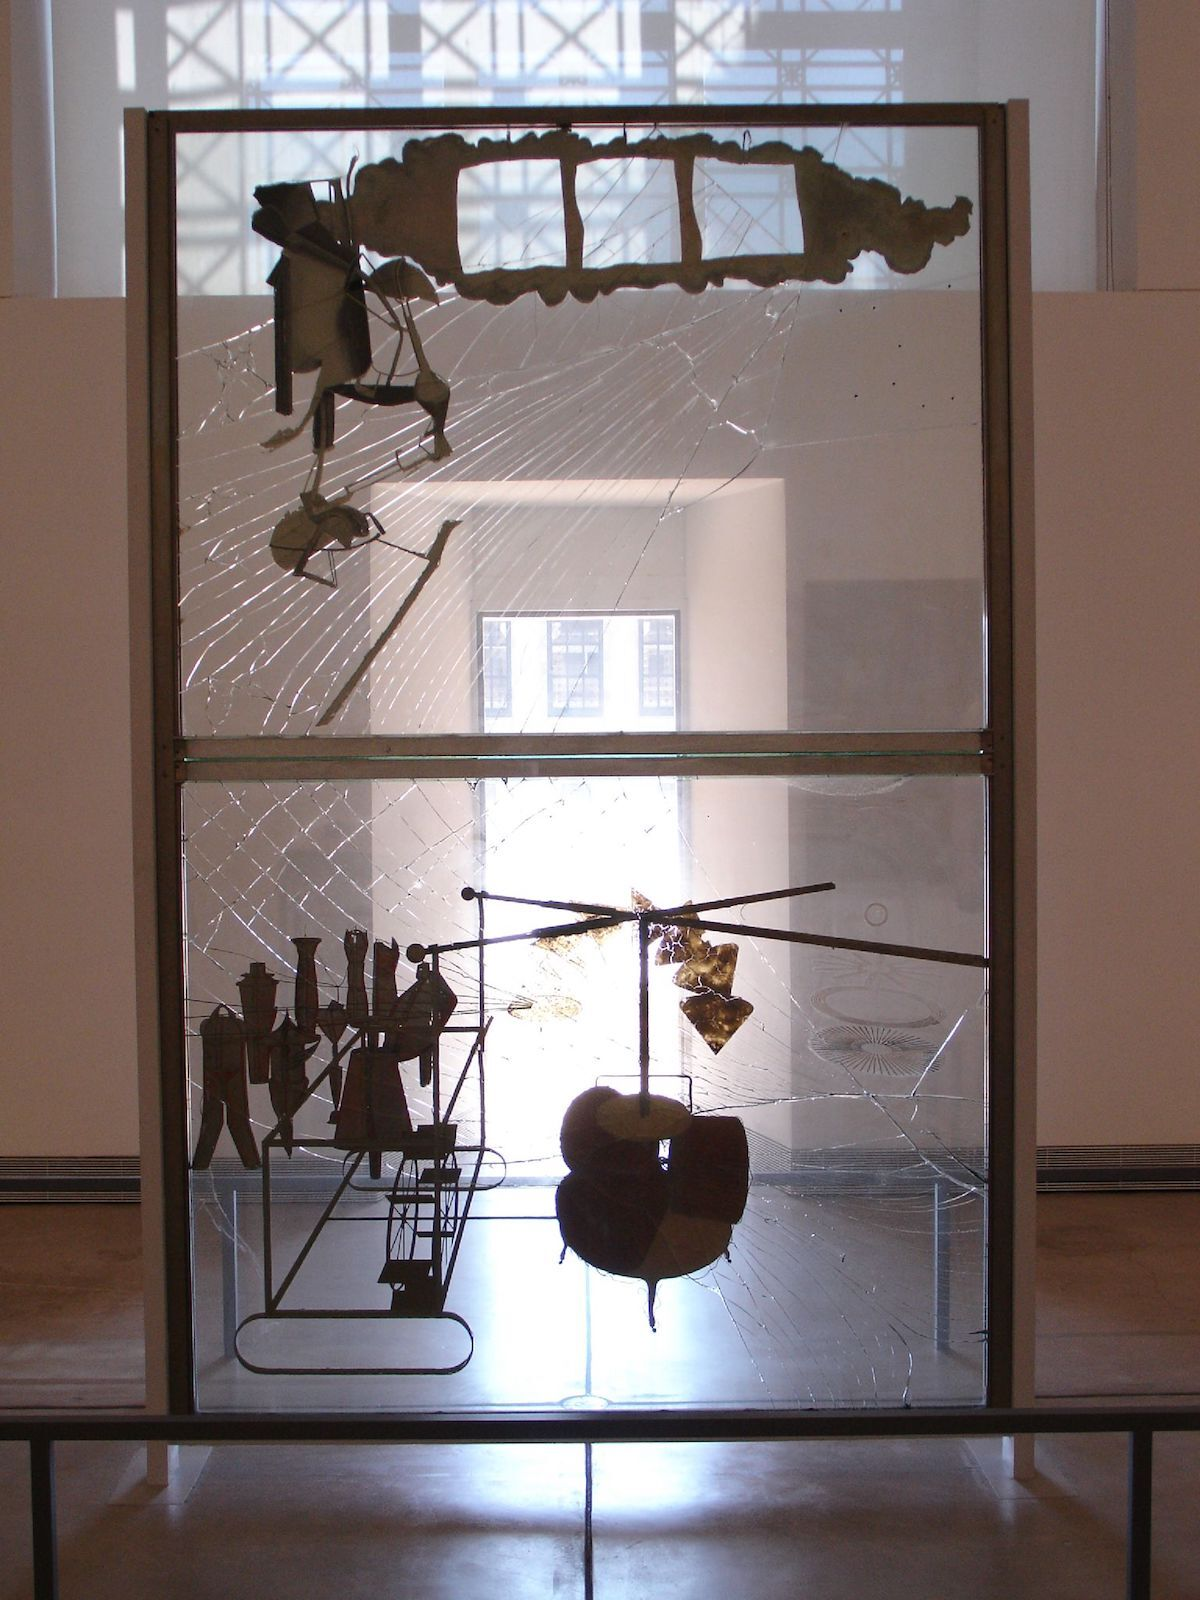 Marcel Duchamp, The Bride Stripped Bare by Her Bachelors, Even (The Large Glass), 1923. Philadelphia Museum of Art. Photo by richard winchell, via Flickr.